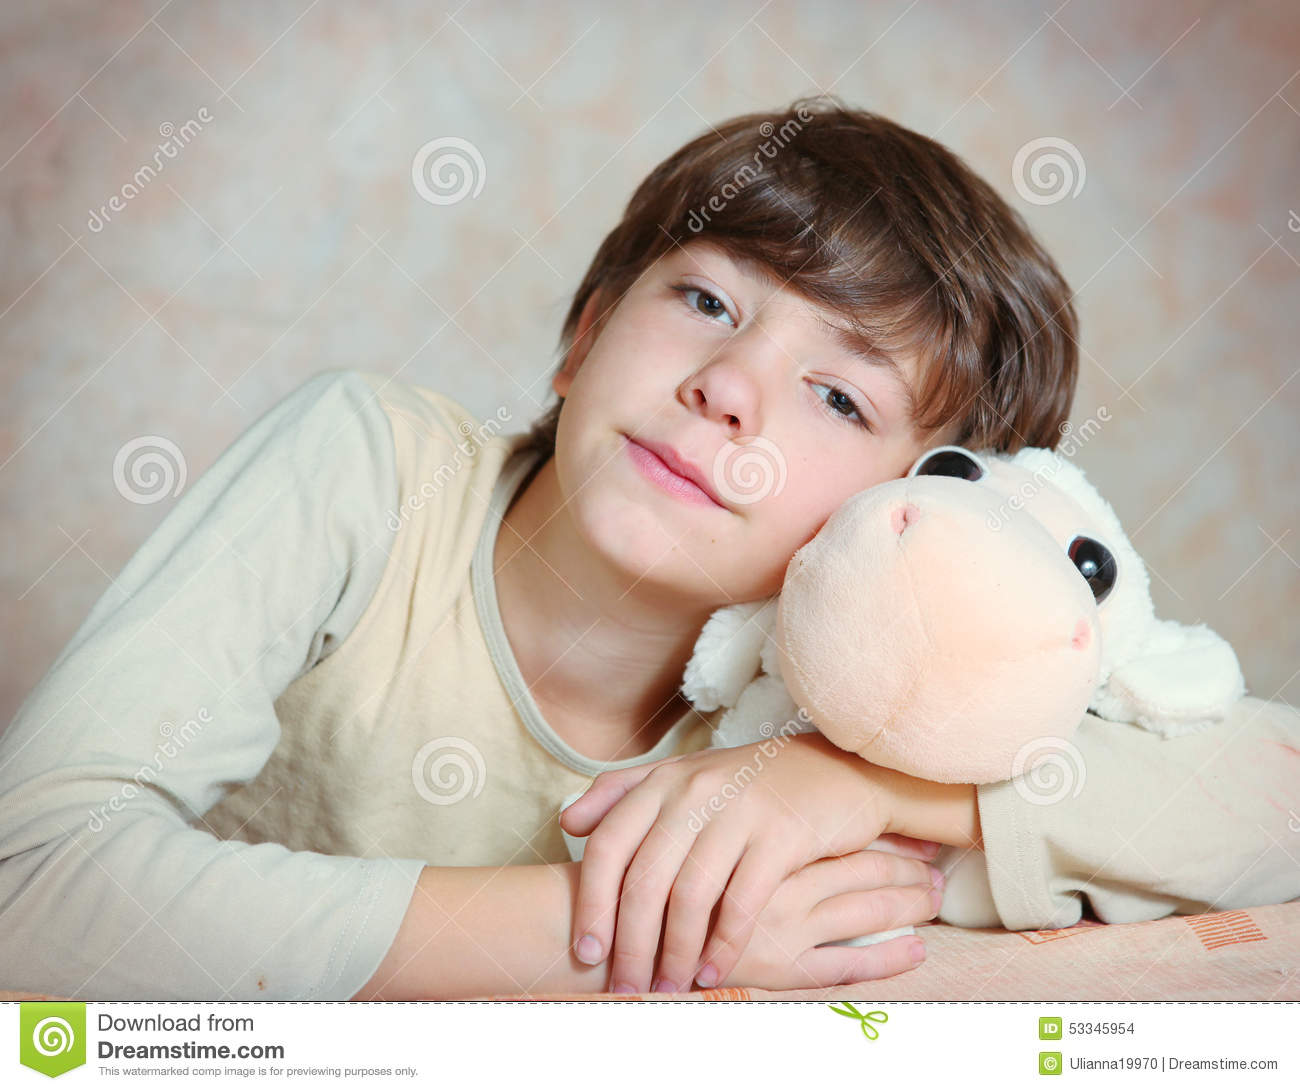 Cute Preteen Boy With Ship Toy Stock Photo - Image: 53345954: https://www.dreamstime.com/stock-photo-cute-preteen-boy-ship-toy-image53345954